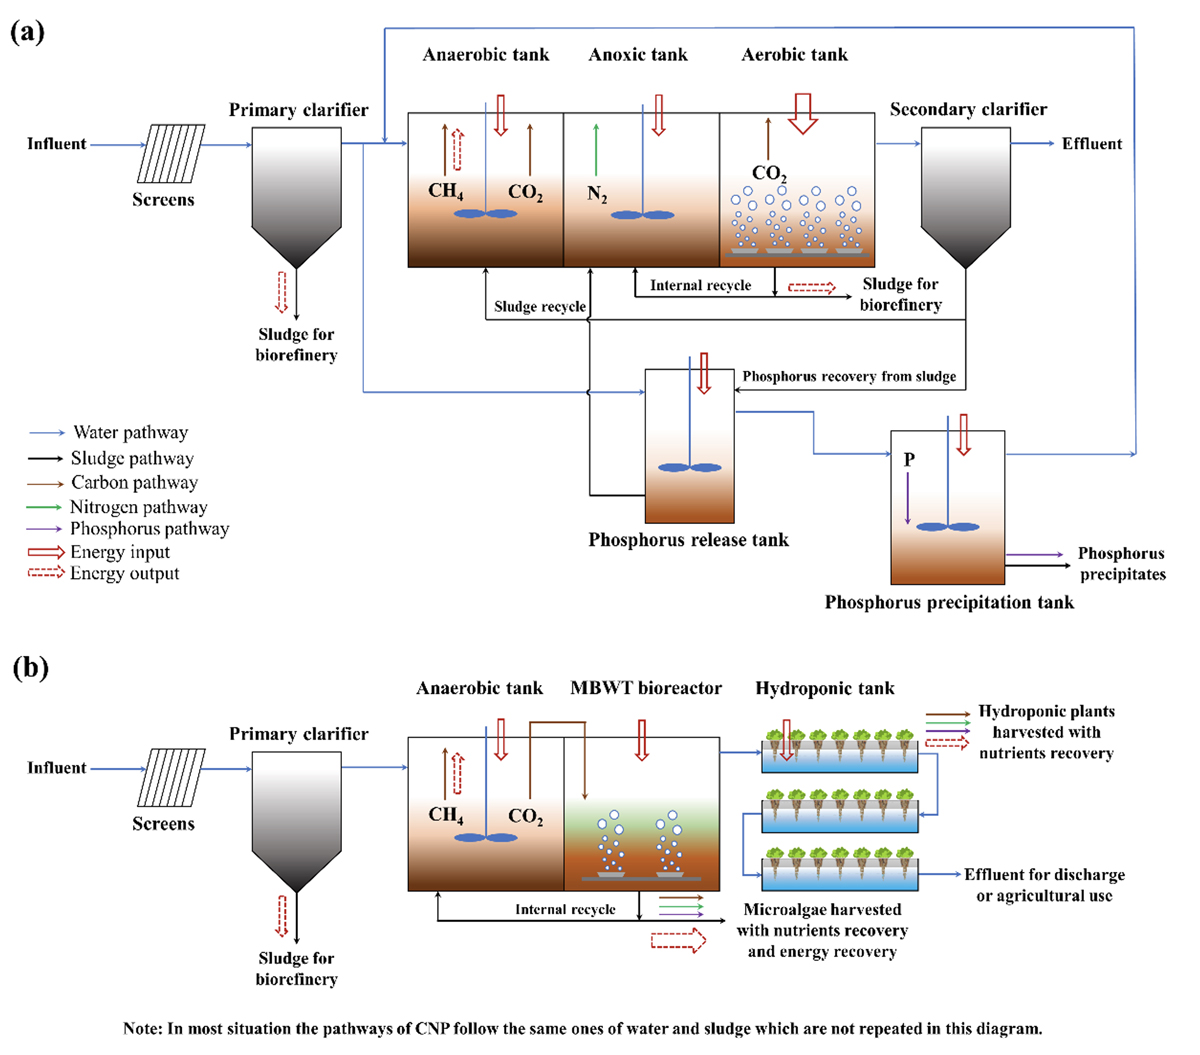 Atlas of Science. Microalgae-based wastewater treatment for nutrients recovery